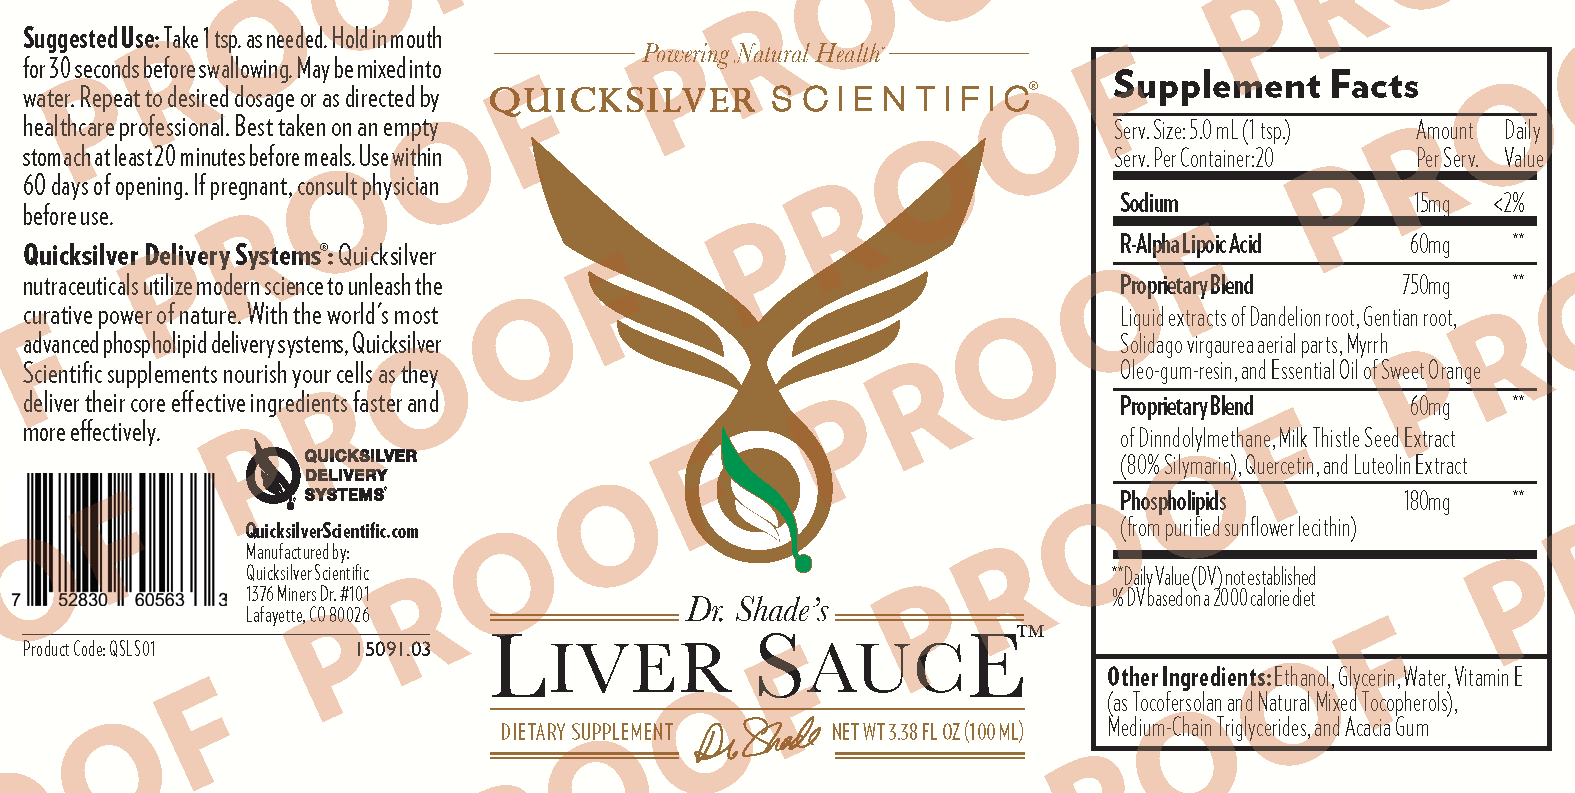 Liver Sauce 100ml Herbal Line 1509103 Adrenal 100 mg 150 vcaps